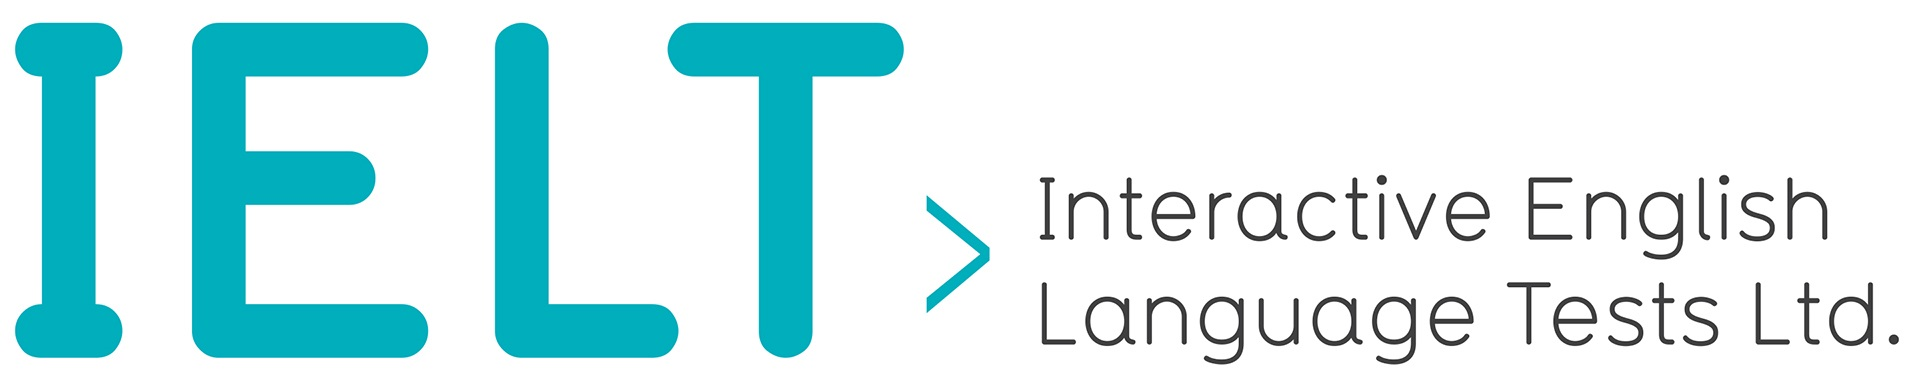 IELT Interactive English Language Tests Ltd